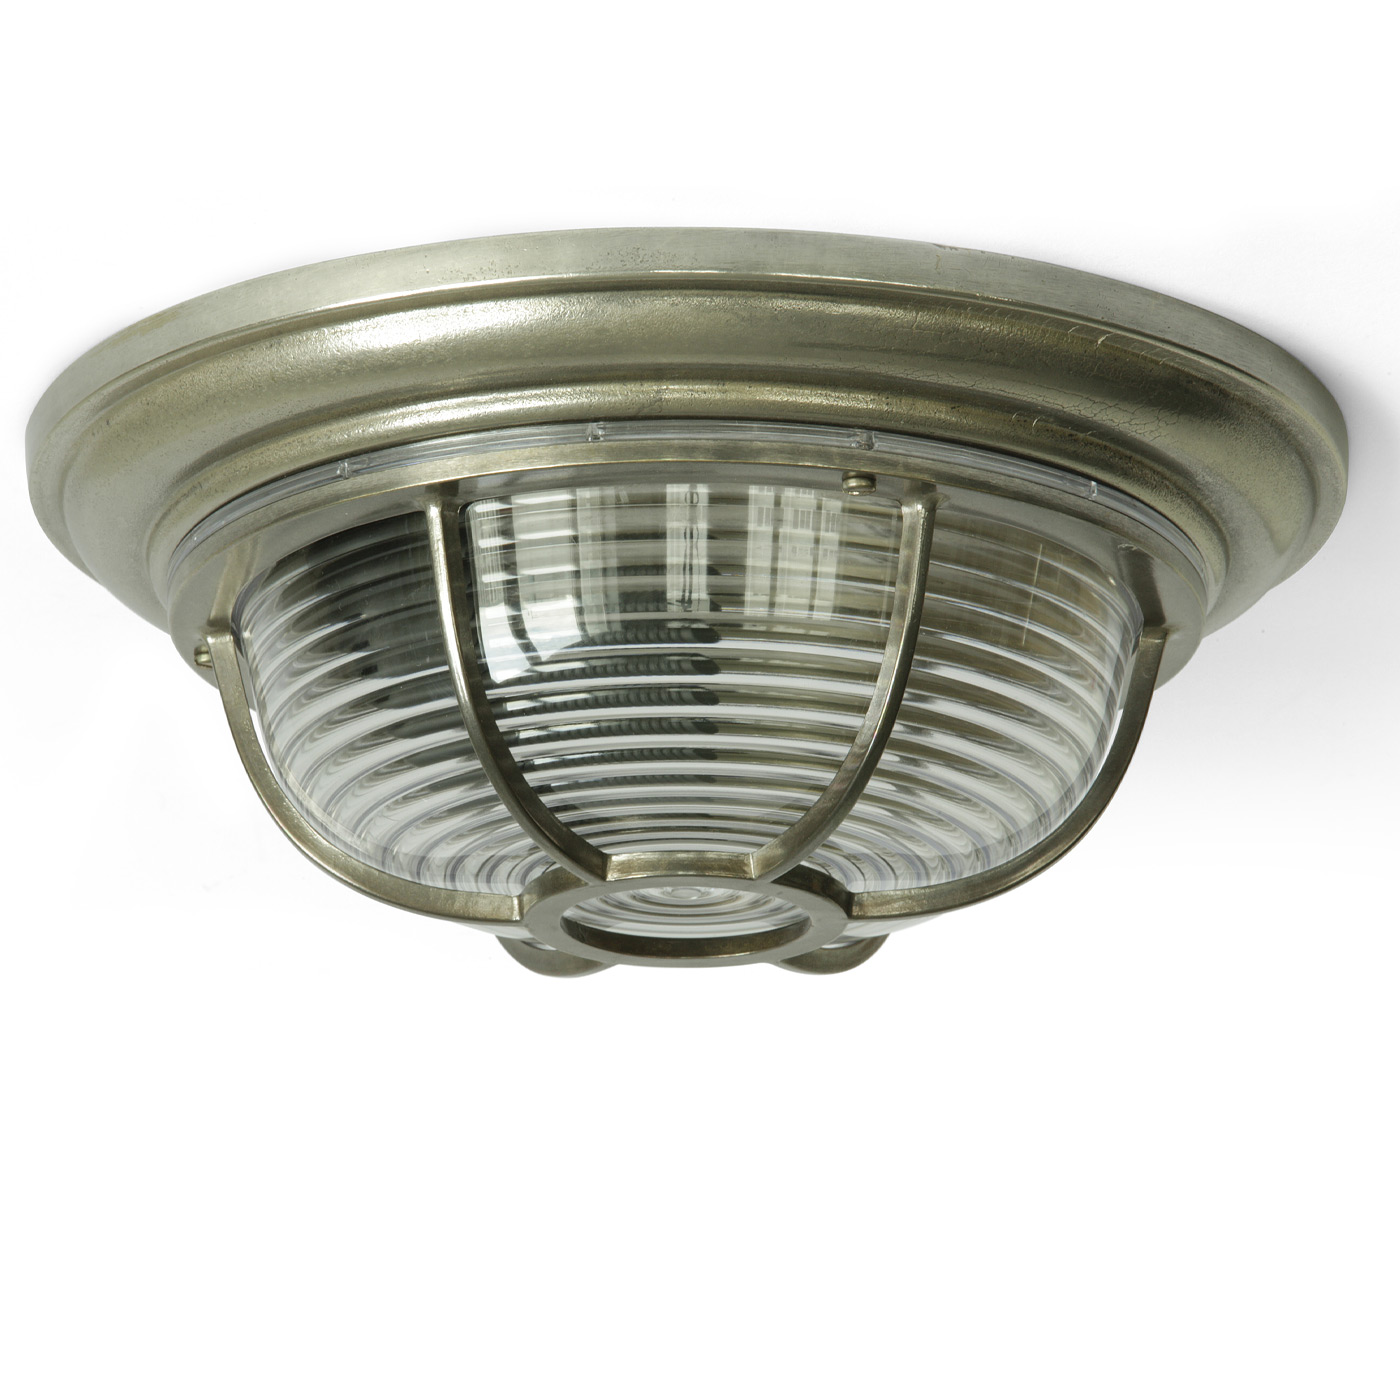 Image 1 solid construction the maritime ships ceiling lamp shown here in antique silver patinated finish